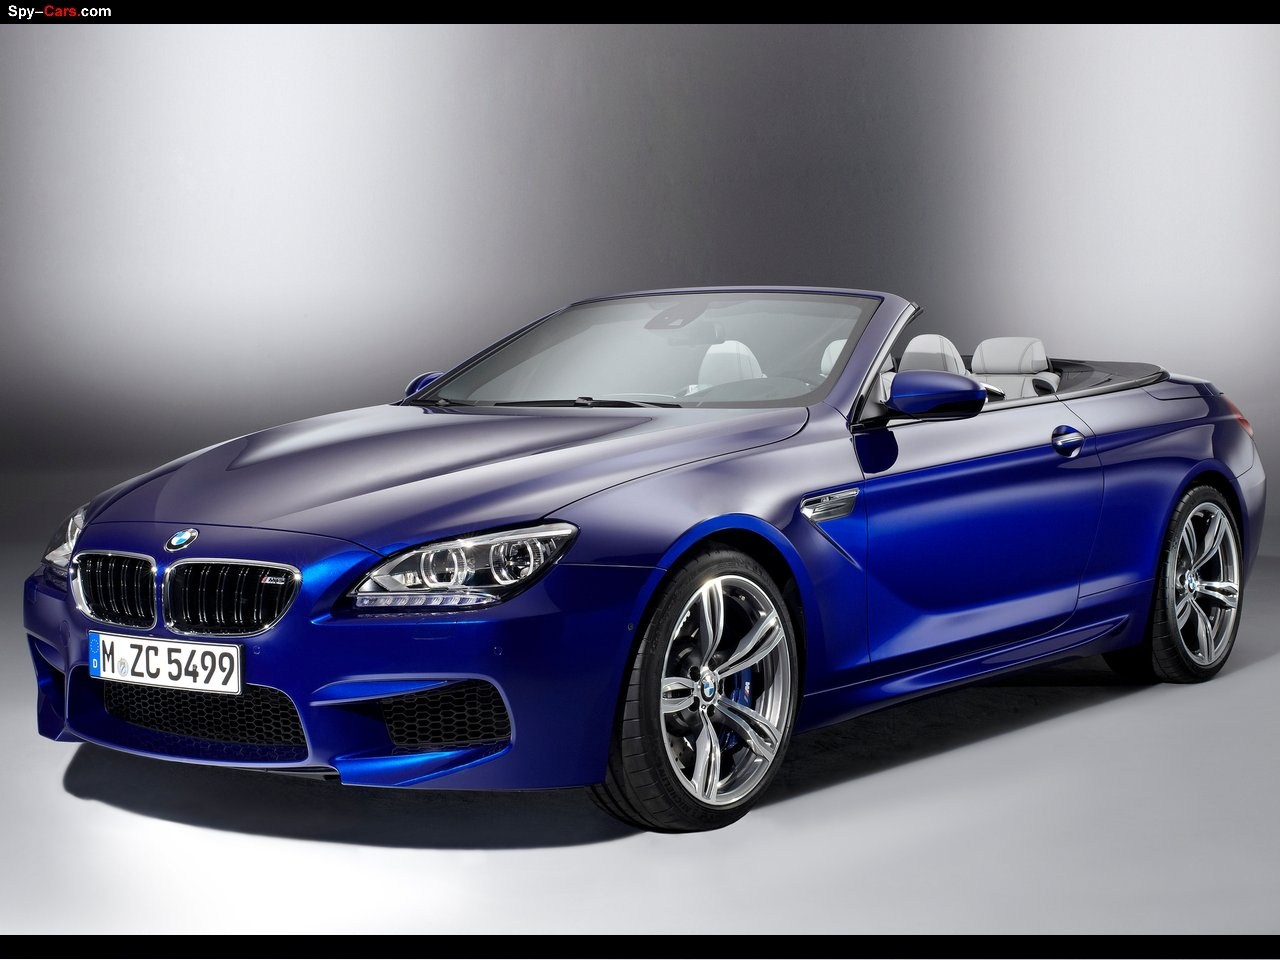 2013 Bmw M6 Convertible Bmw Autos Spain